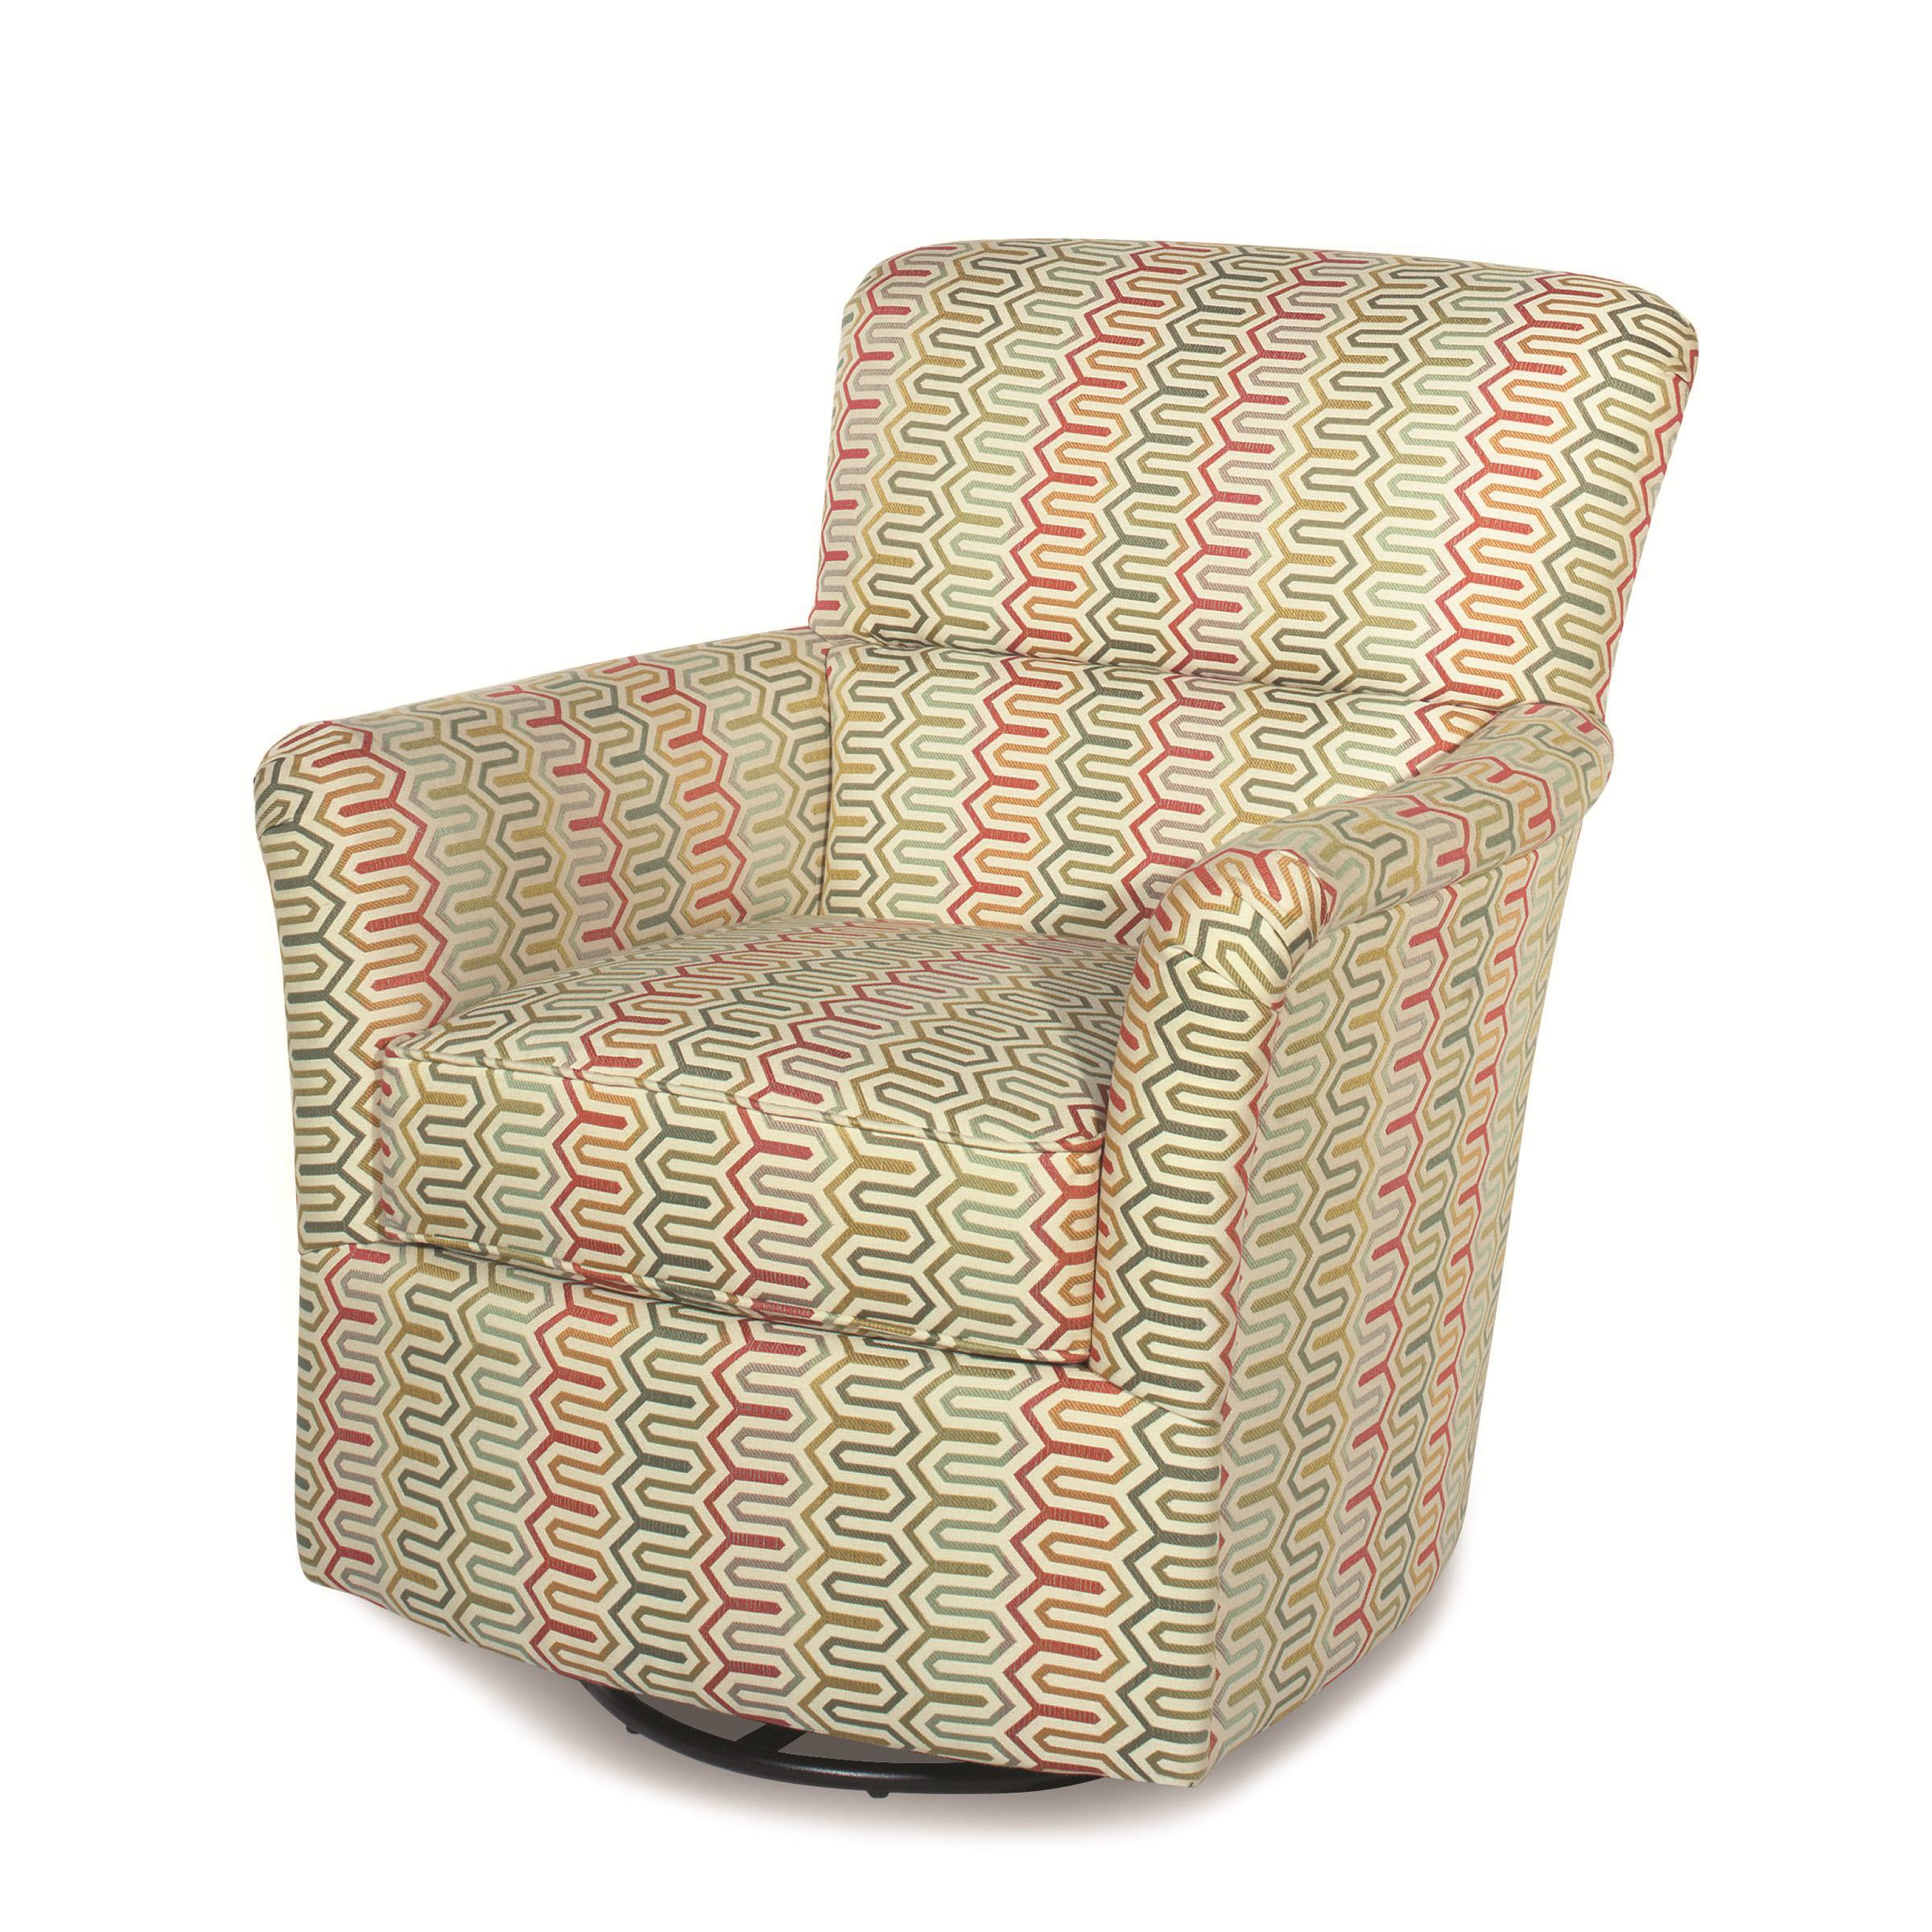 Upholstered Glider Chair Swivel Chairs Contemporary Upholstered Swivel Glider Chair